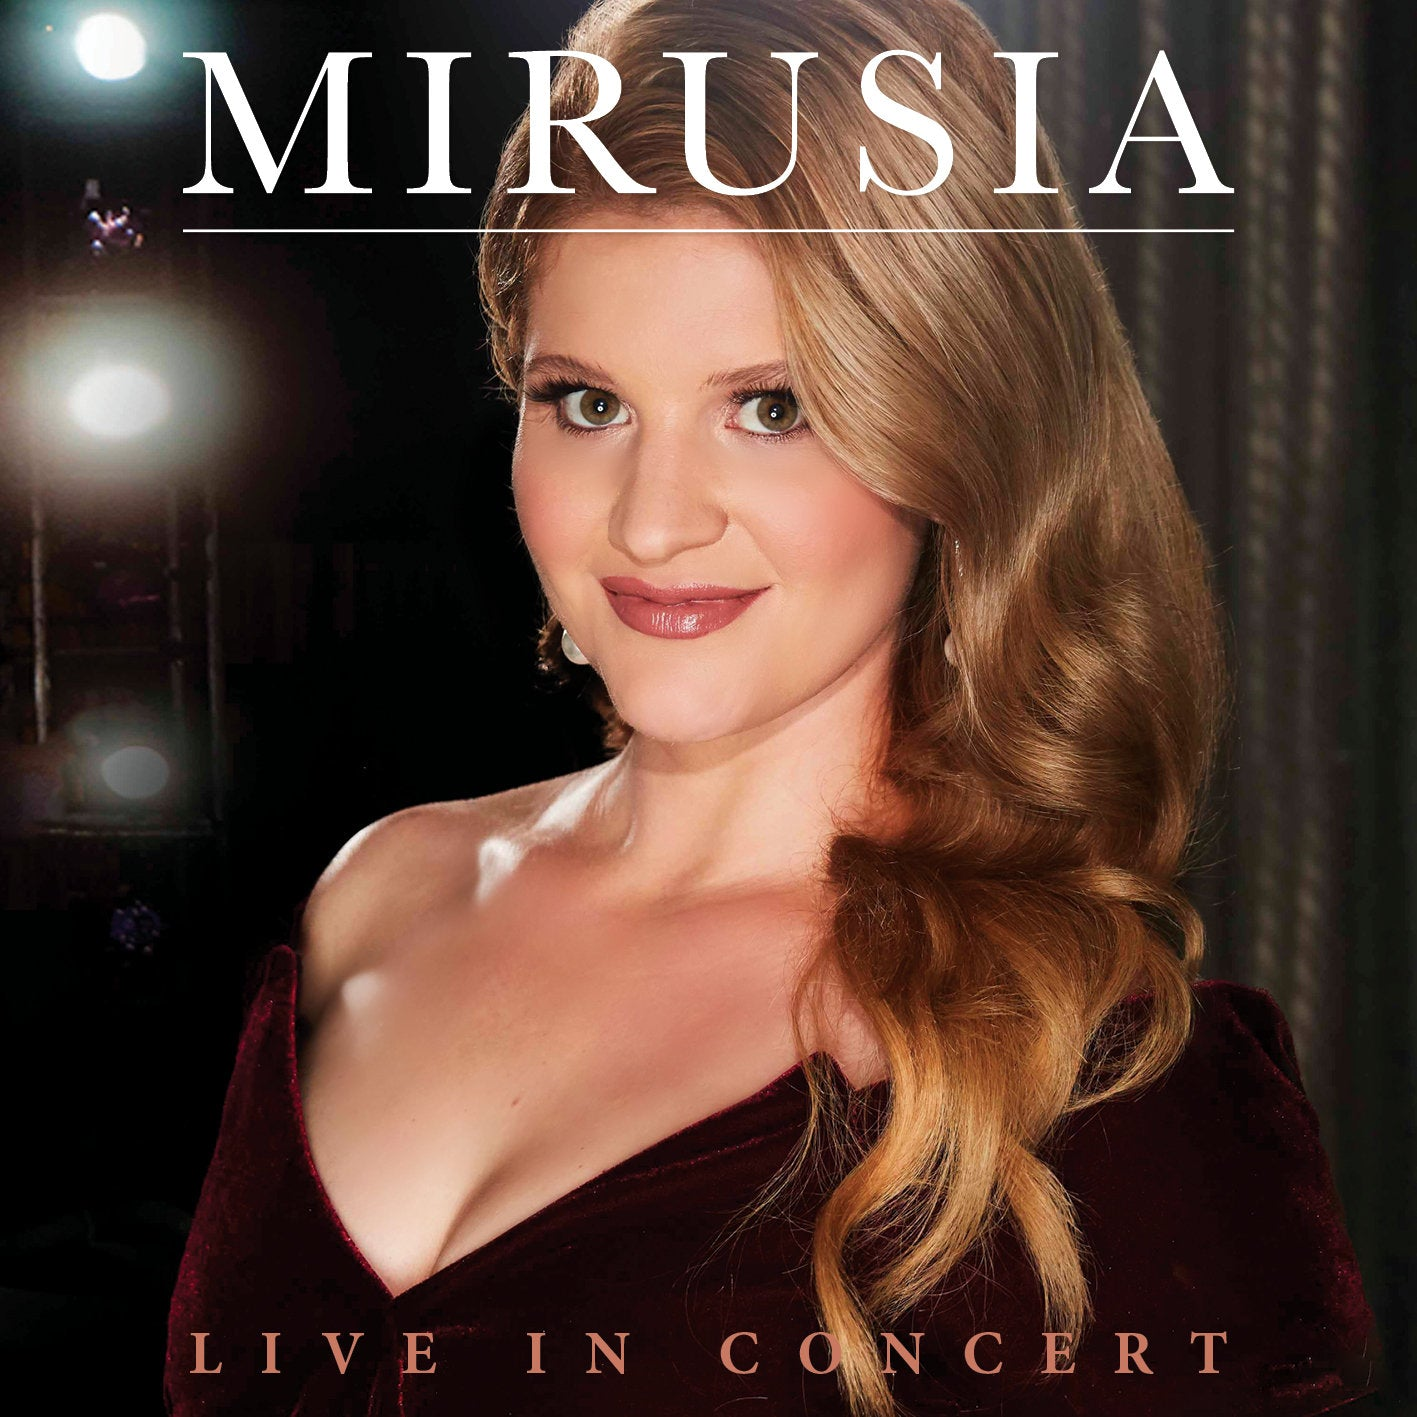 MIRUSIA - Live In Concert (SIGNED CD) RELEASED 4 JUNE 2021